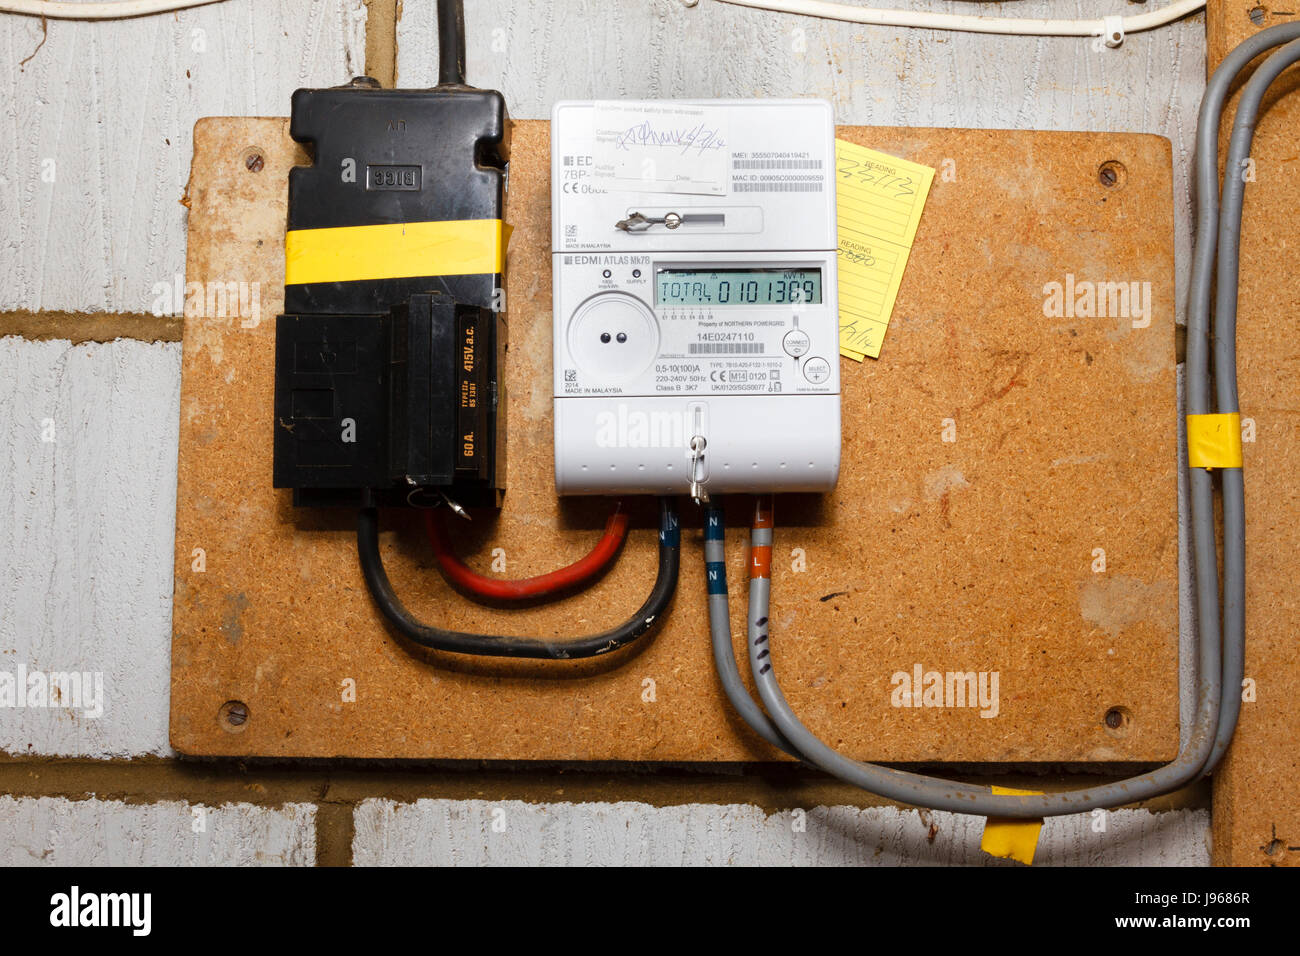 Electric meter, domestic house,UK - Stock Image